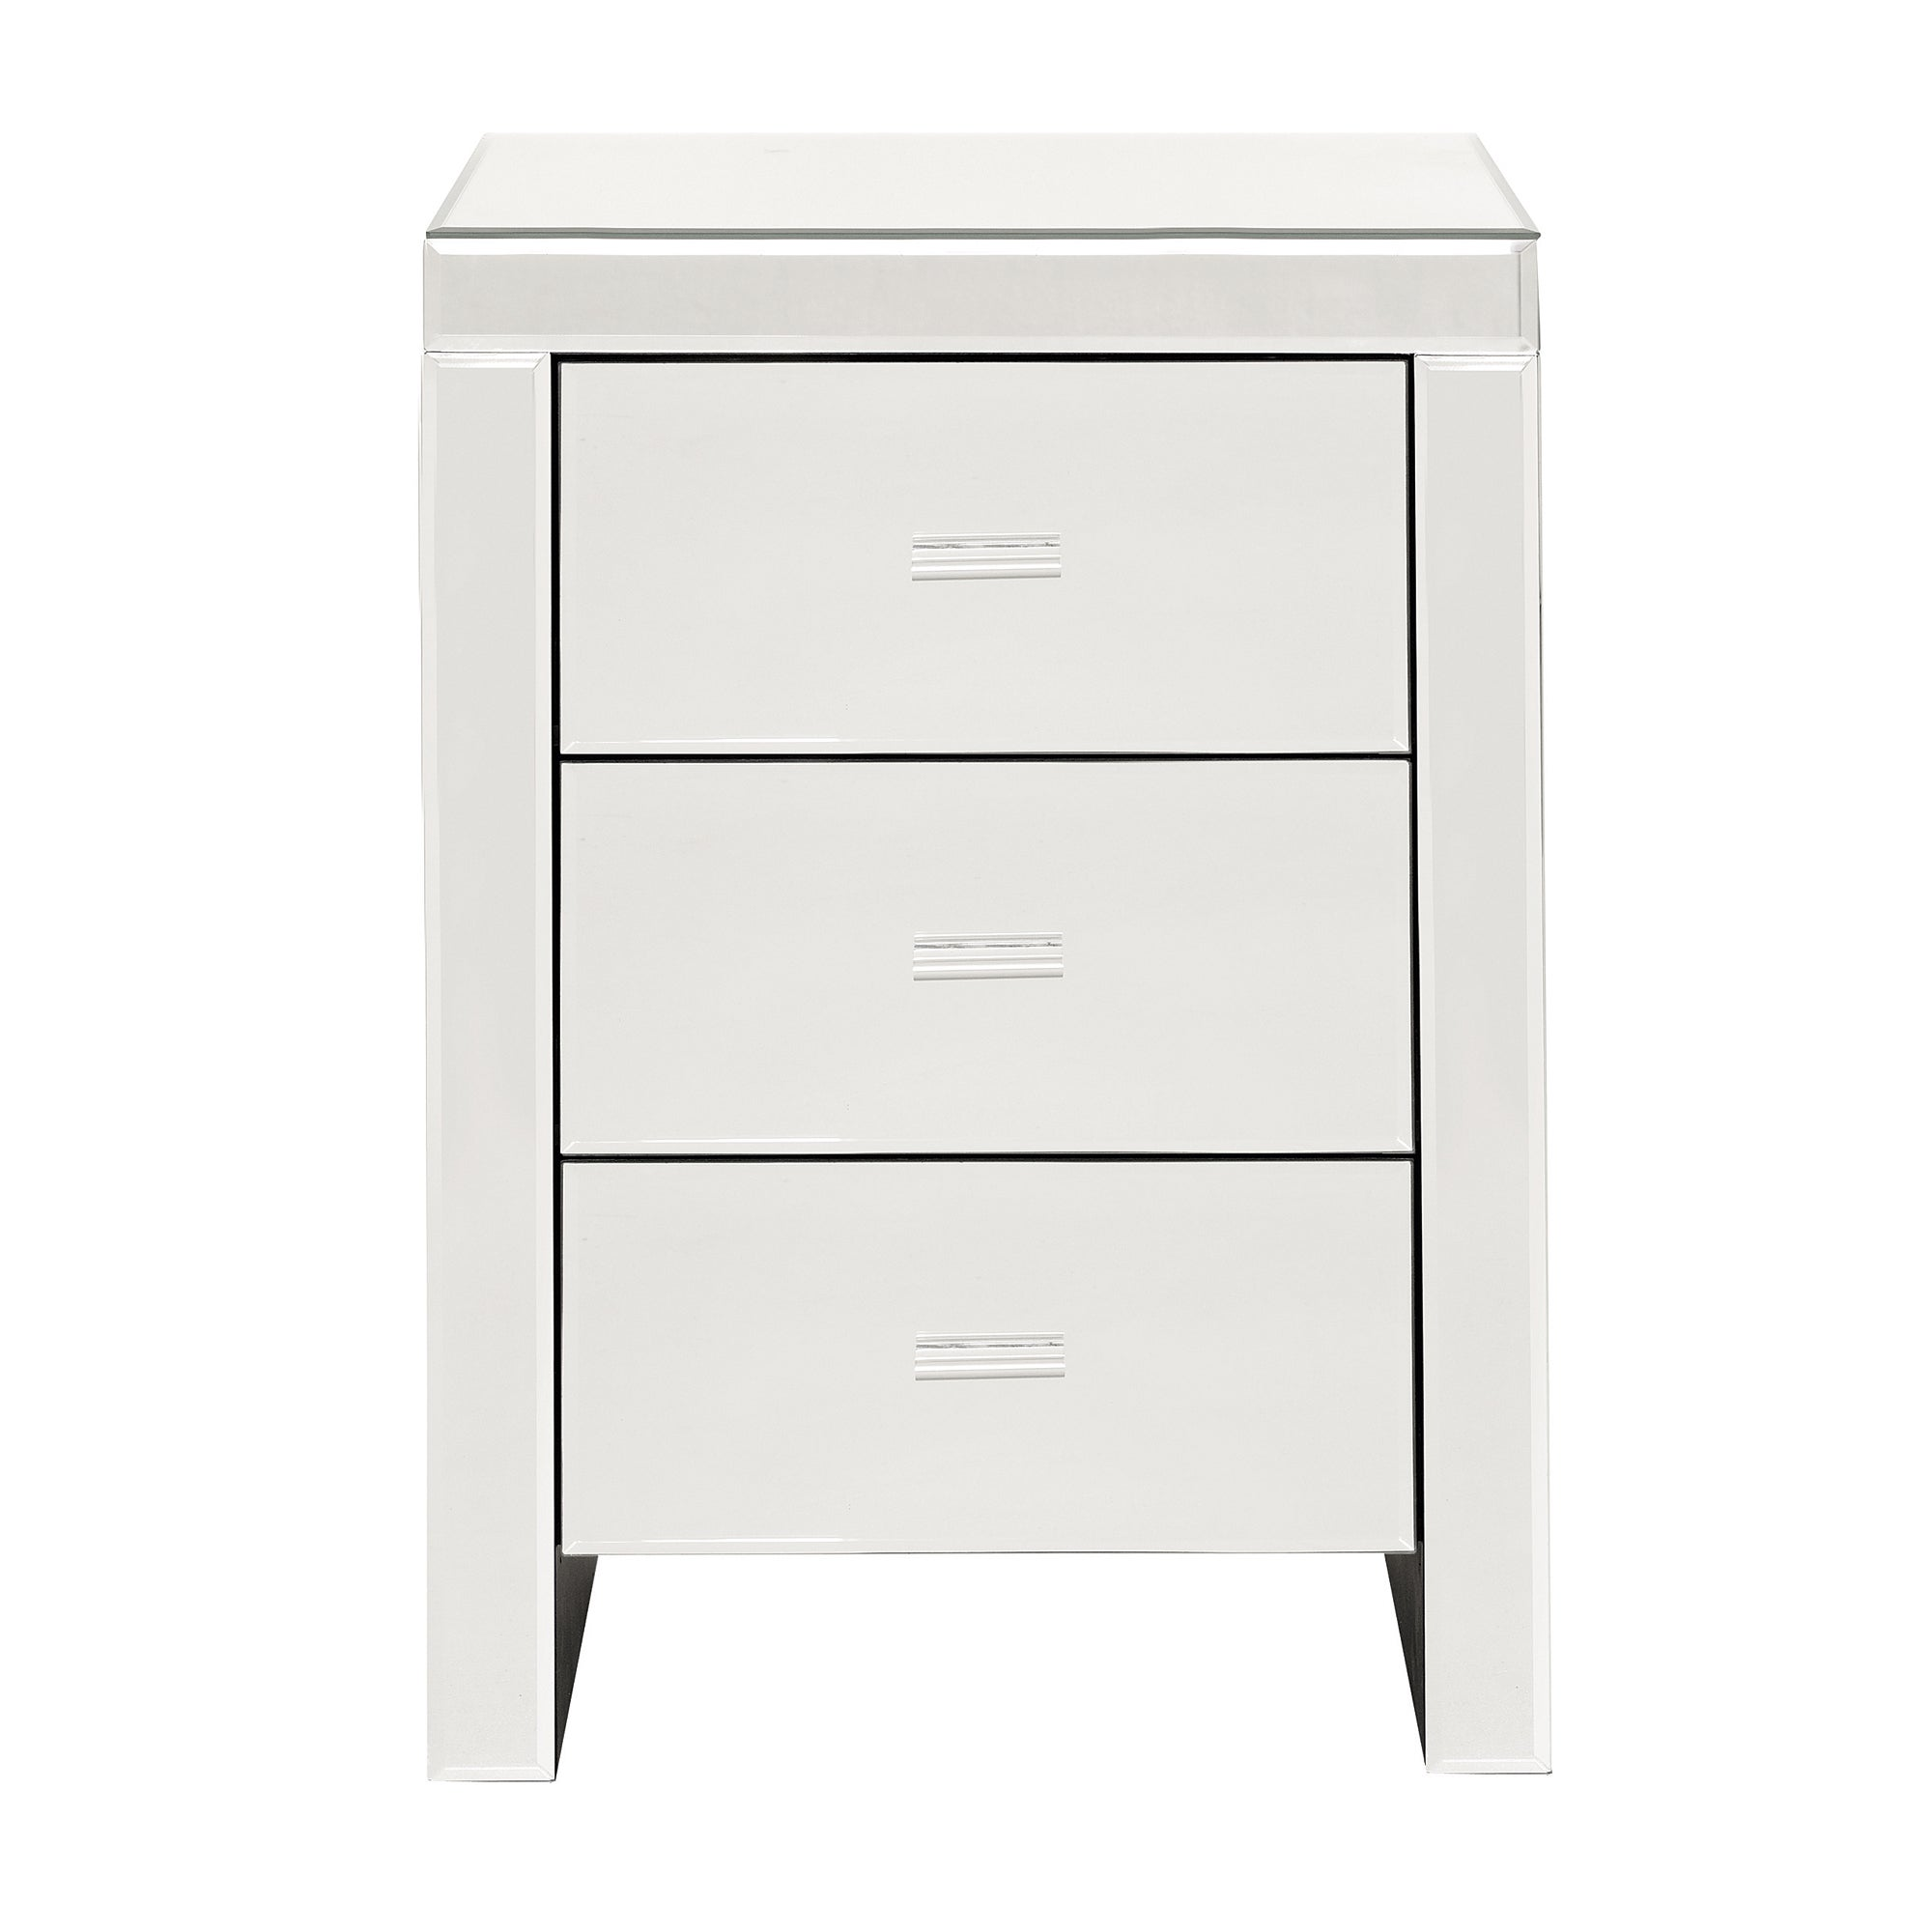 Venetian Mirrored Furniture 3 Drawer Bedside Unit